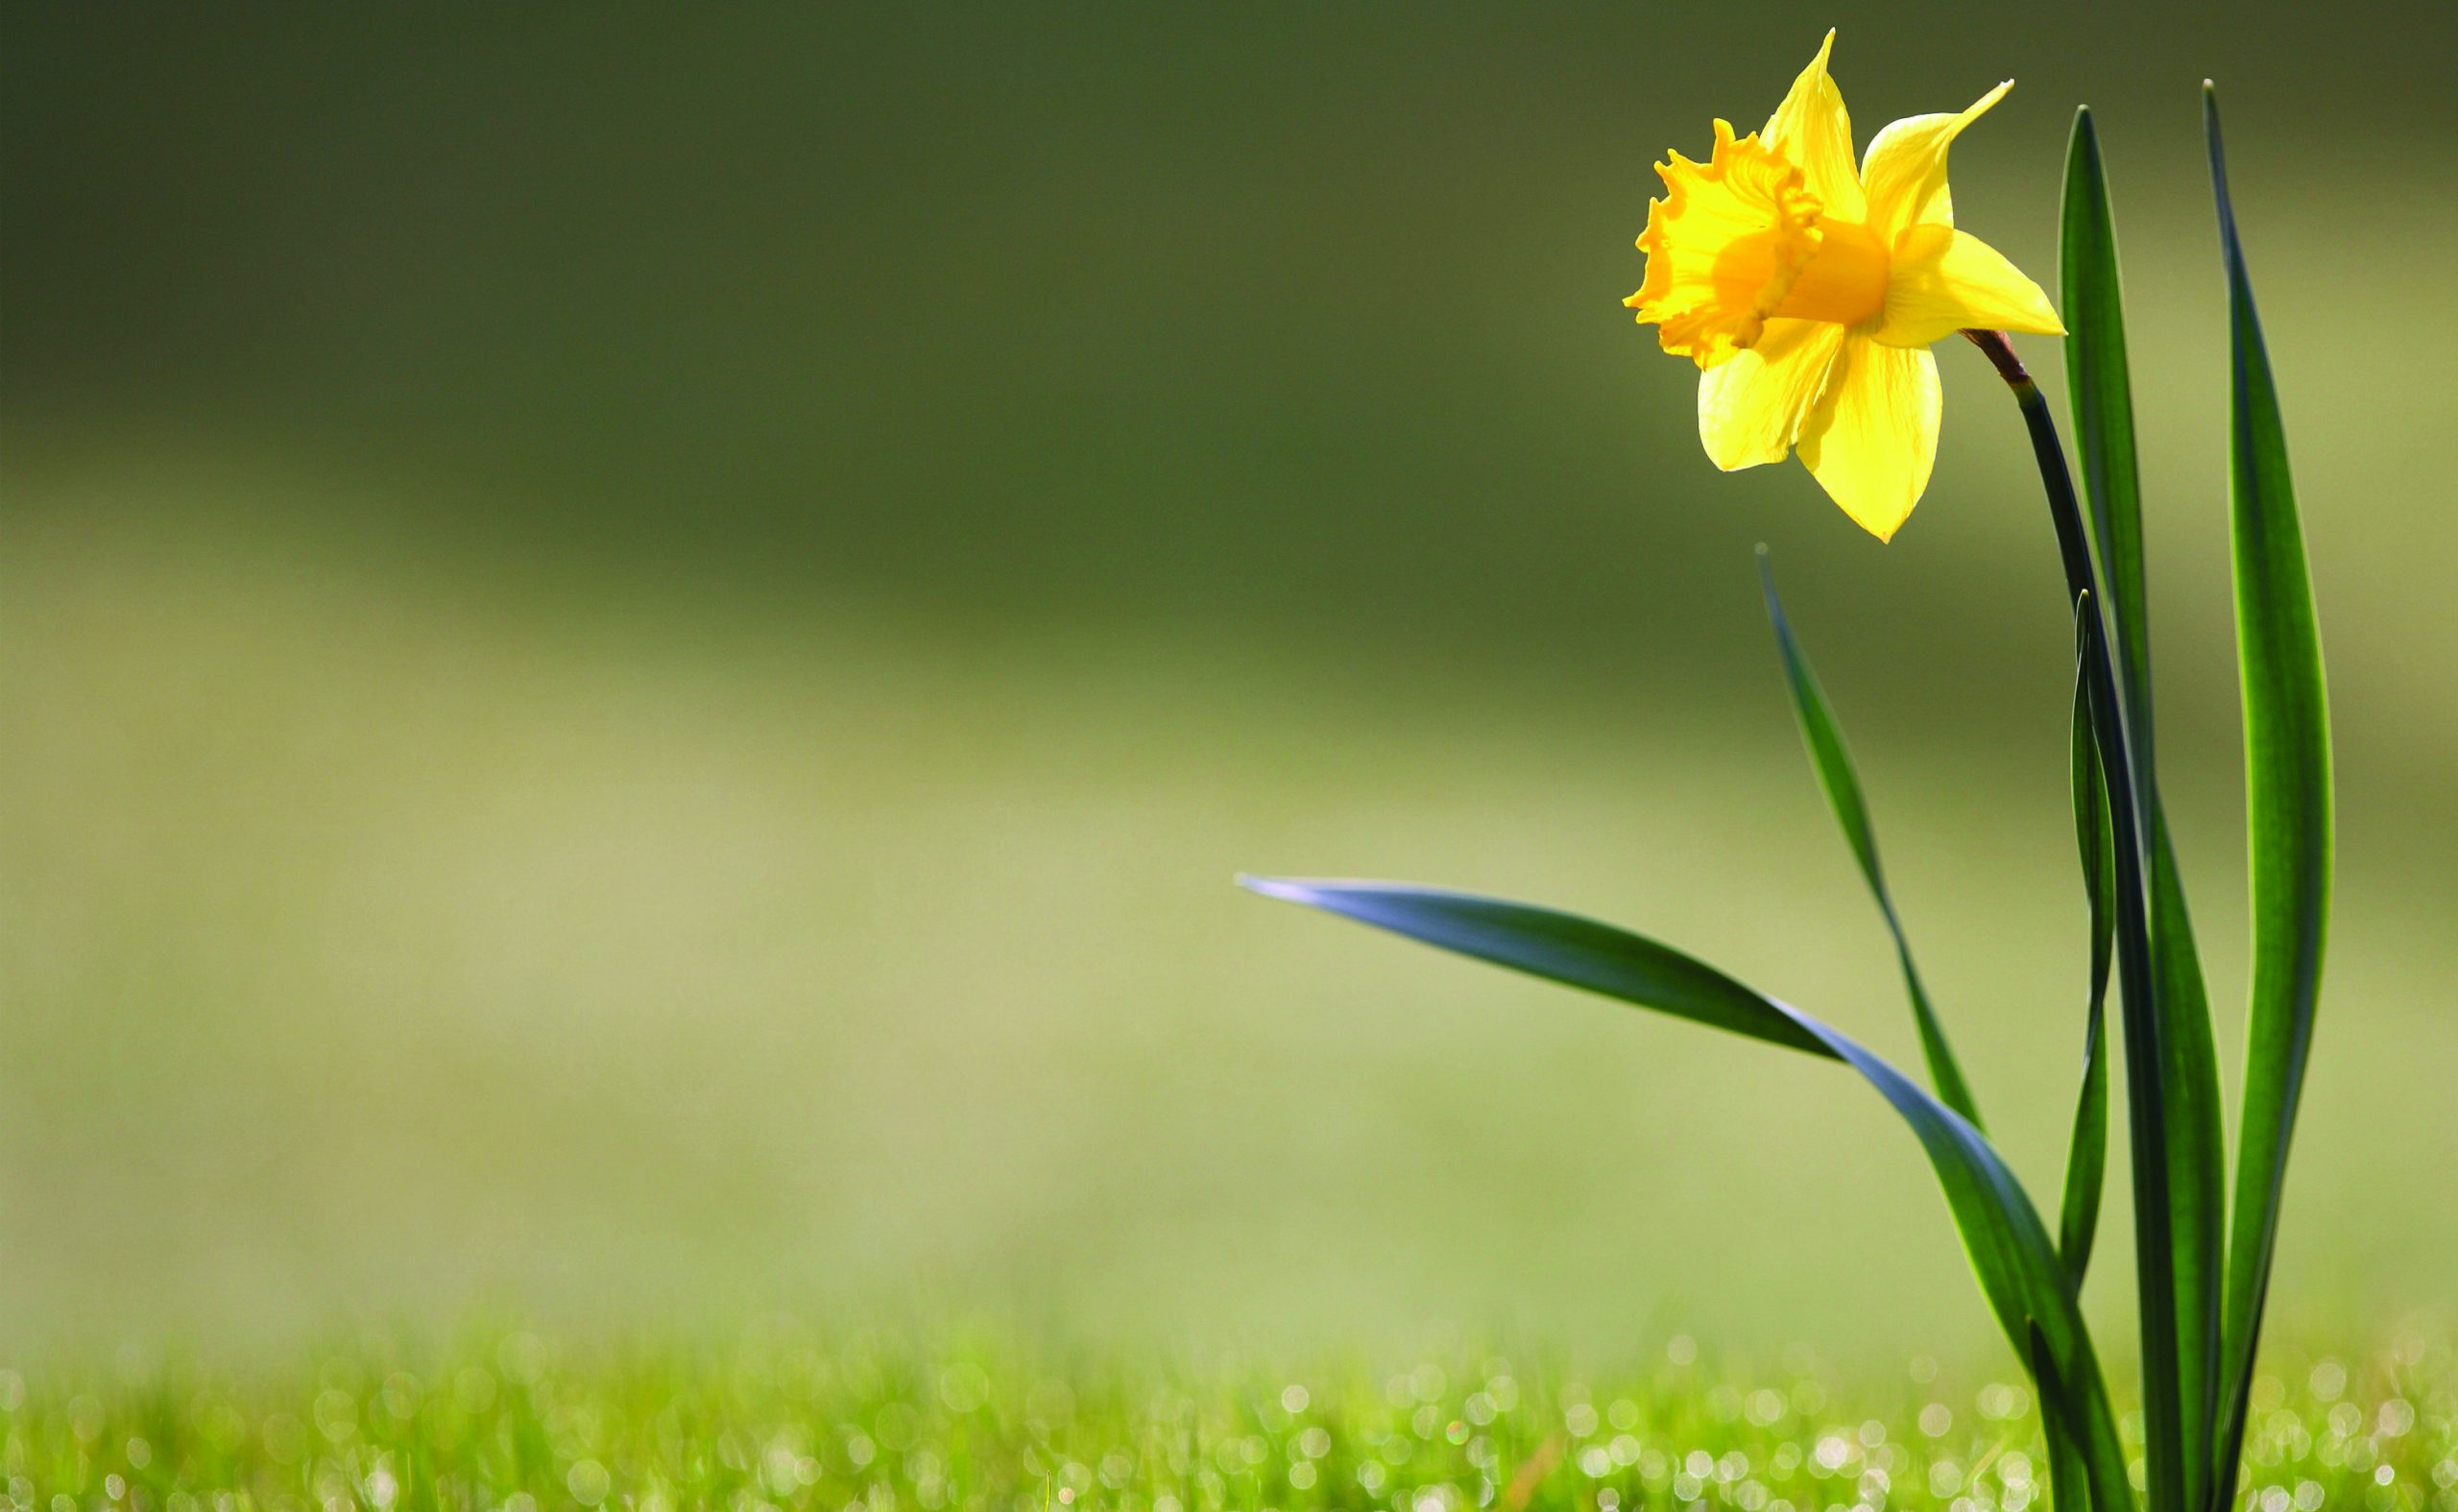 Daffodil-Wallpapers-scaled جهان تنها!